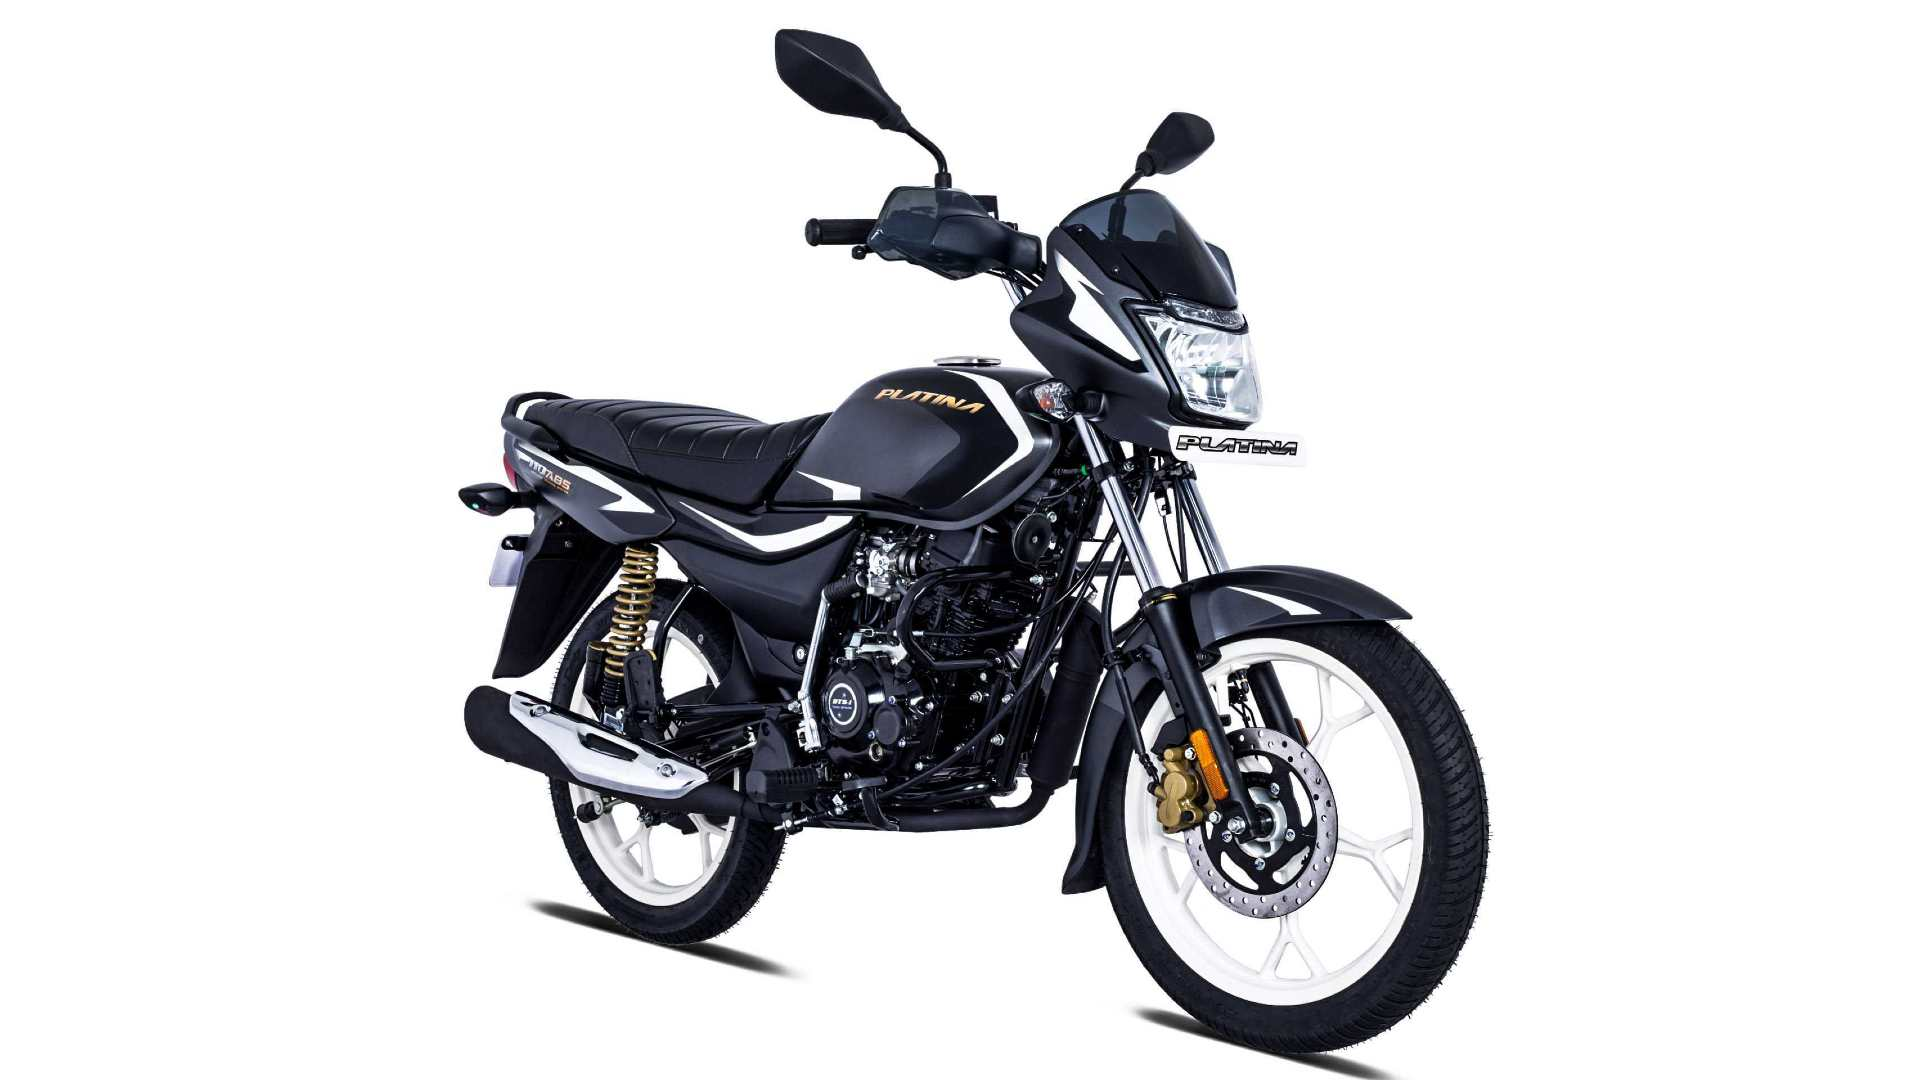 Bajaj Platina 110 ABS launched at Rs 65,926, first entry-level commuter to feature anti-lock brakes